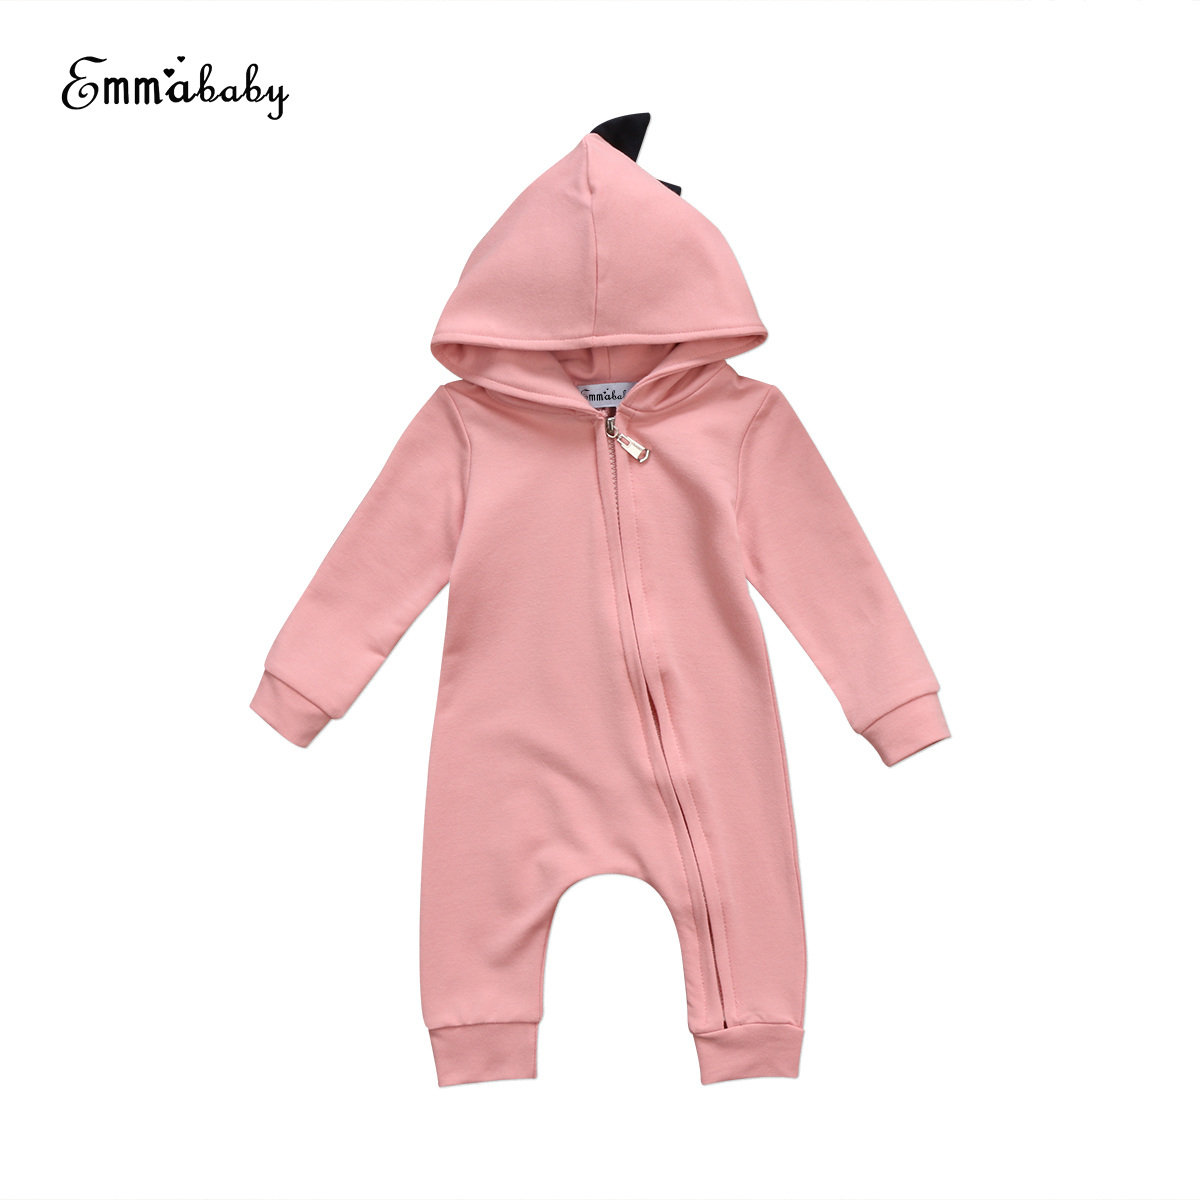 2018 new lovely kid rompers Newborn Baby Boy Girl long sleeve Dinosaur Hooded Romper Playsuit solid adorable Outfit Clothes newborn baby rompers baby clothing 100% cotton infant jumpsuit ropa bebe long sleeve girl boys rompers costumes baby romper